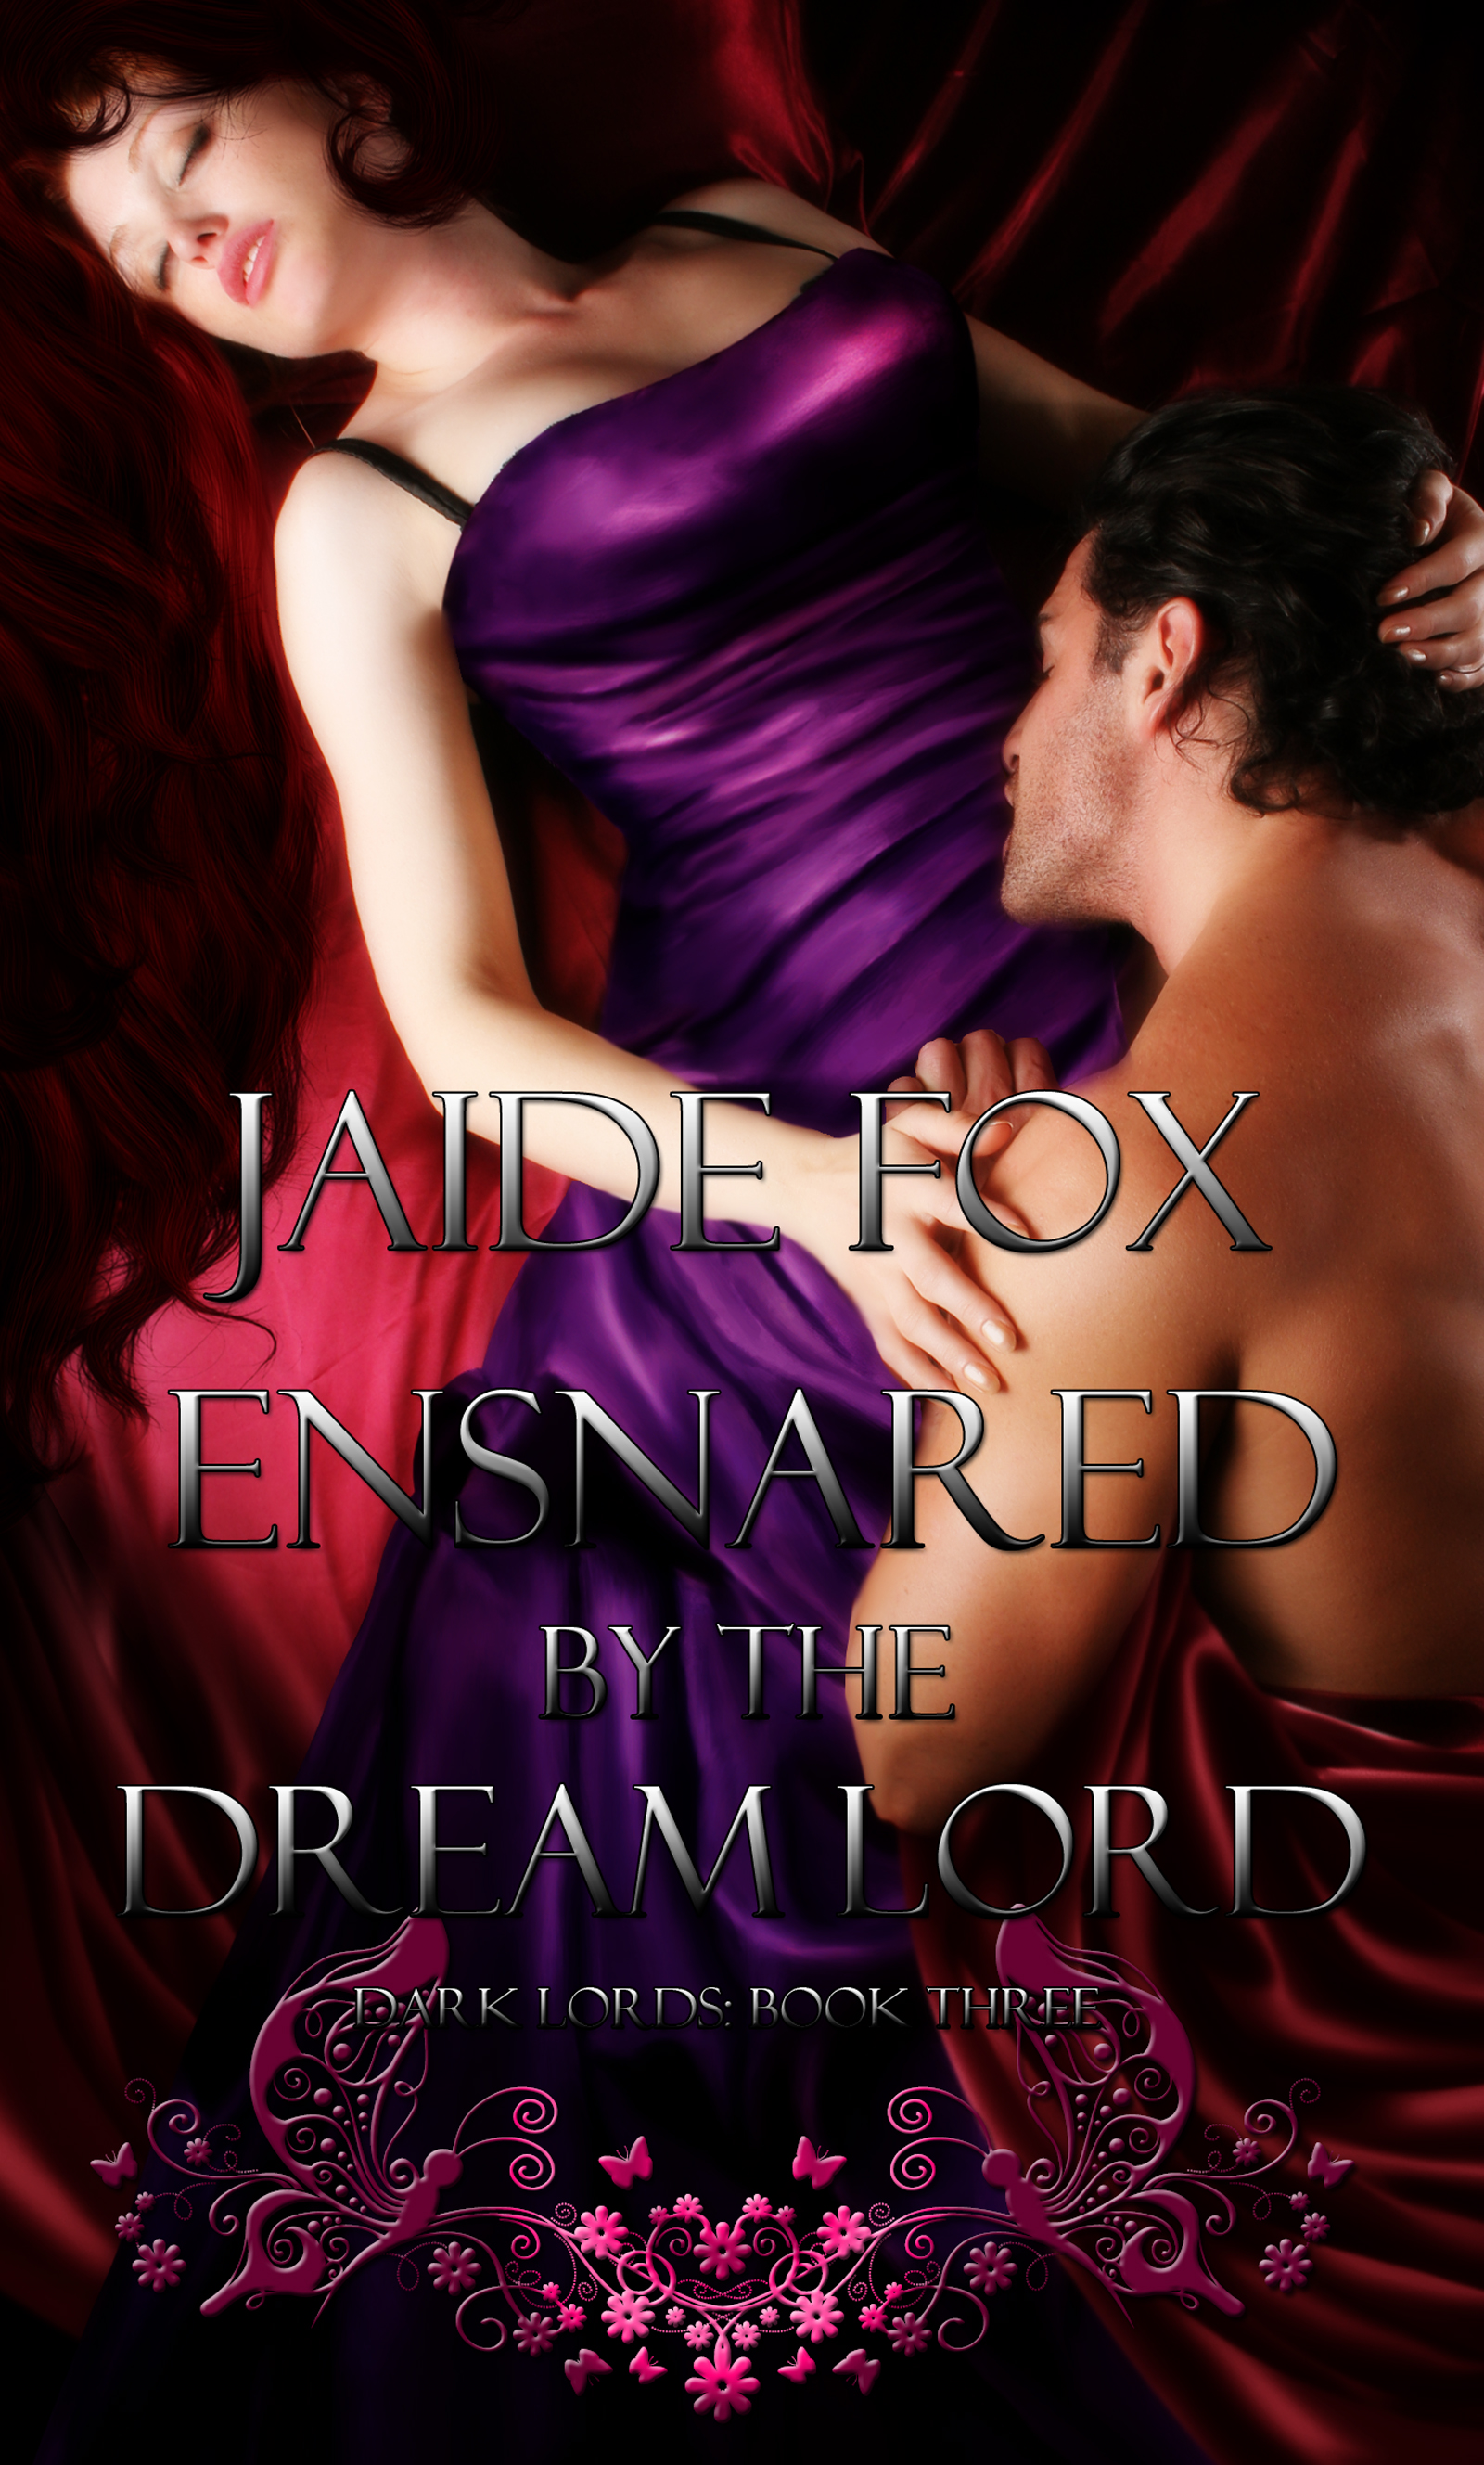 Jaide Fox - Dark Lords 3: Ensnared by the Dream Lord